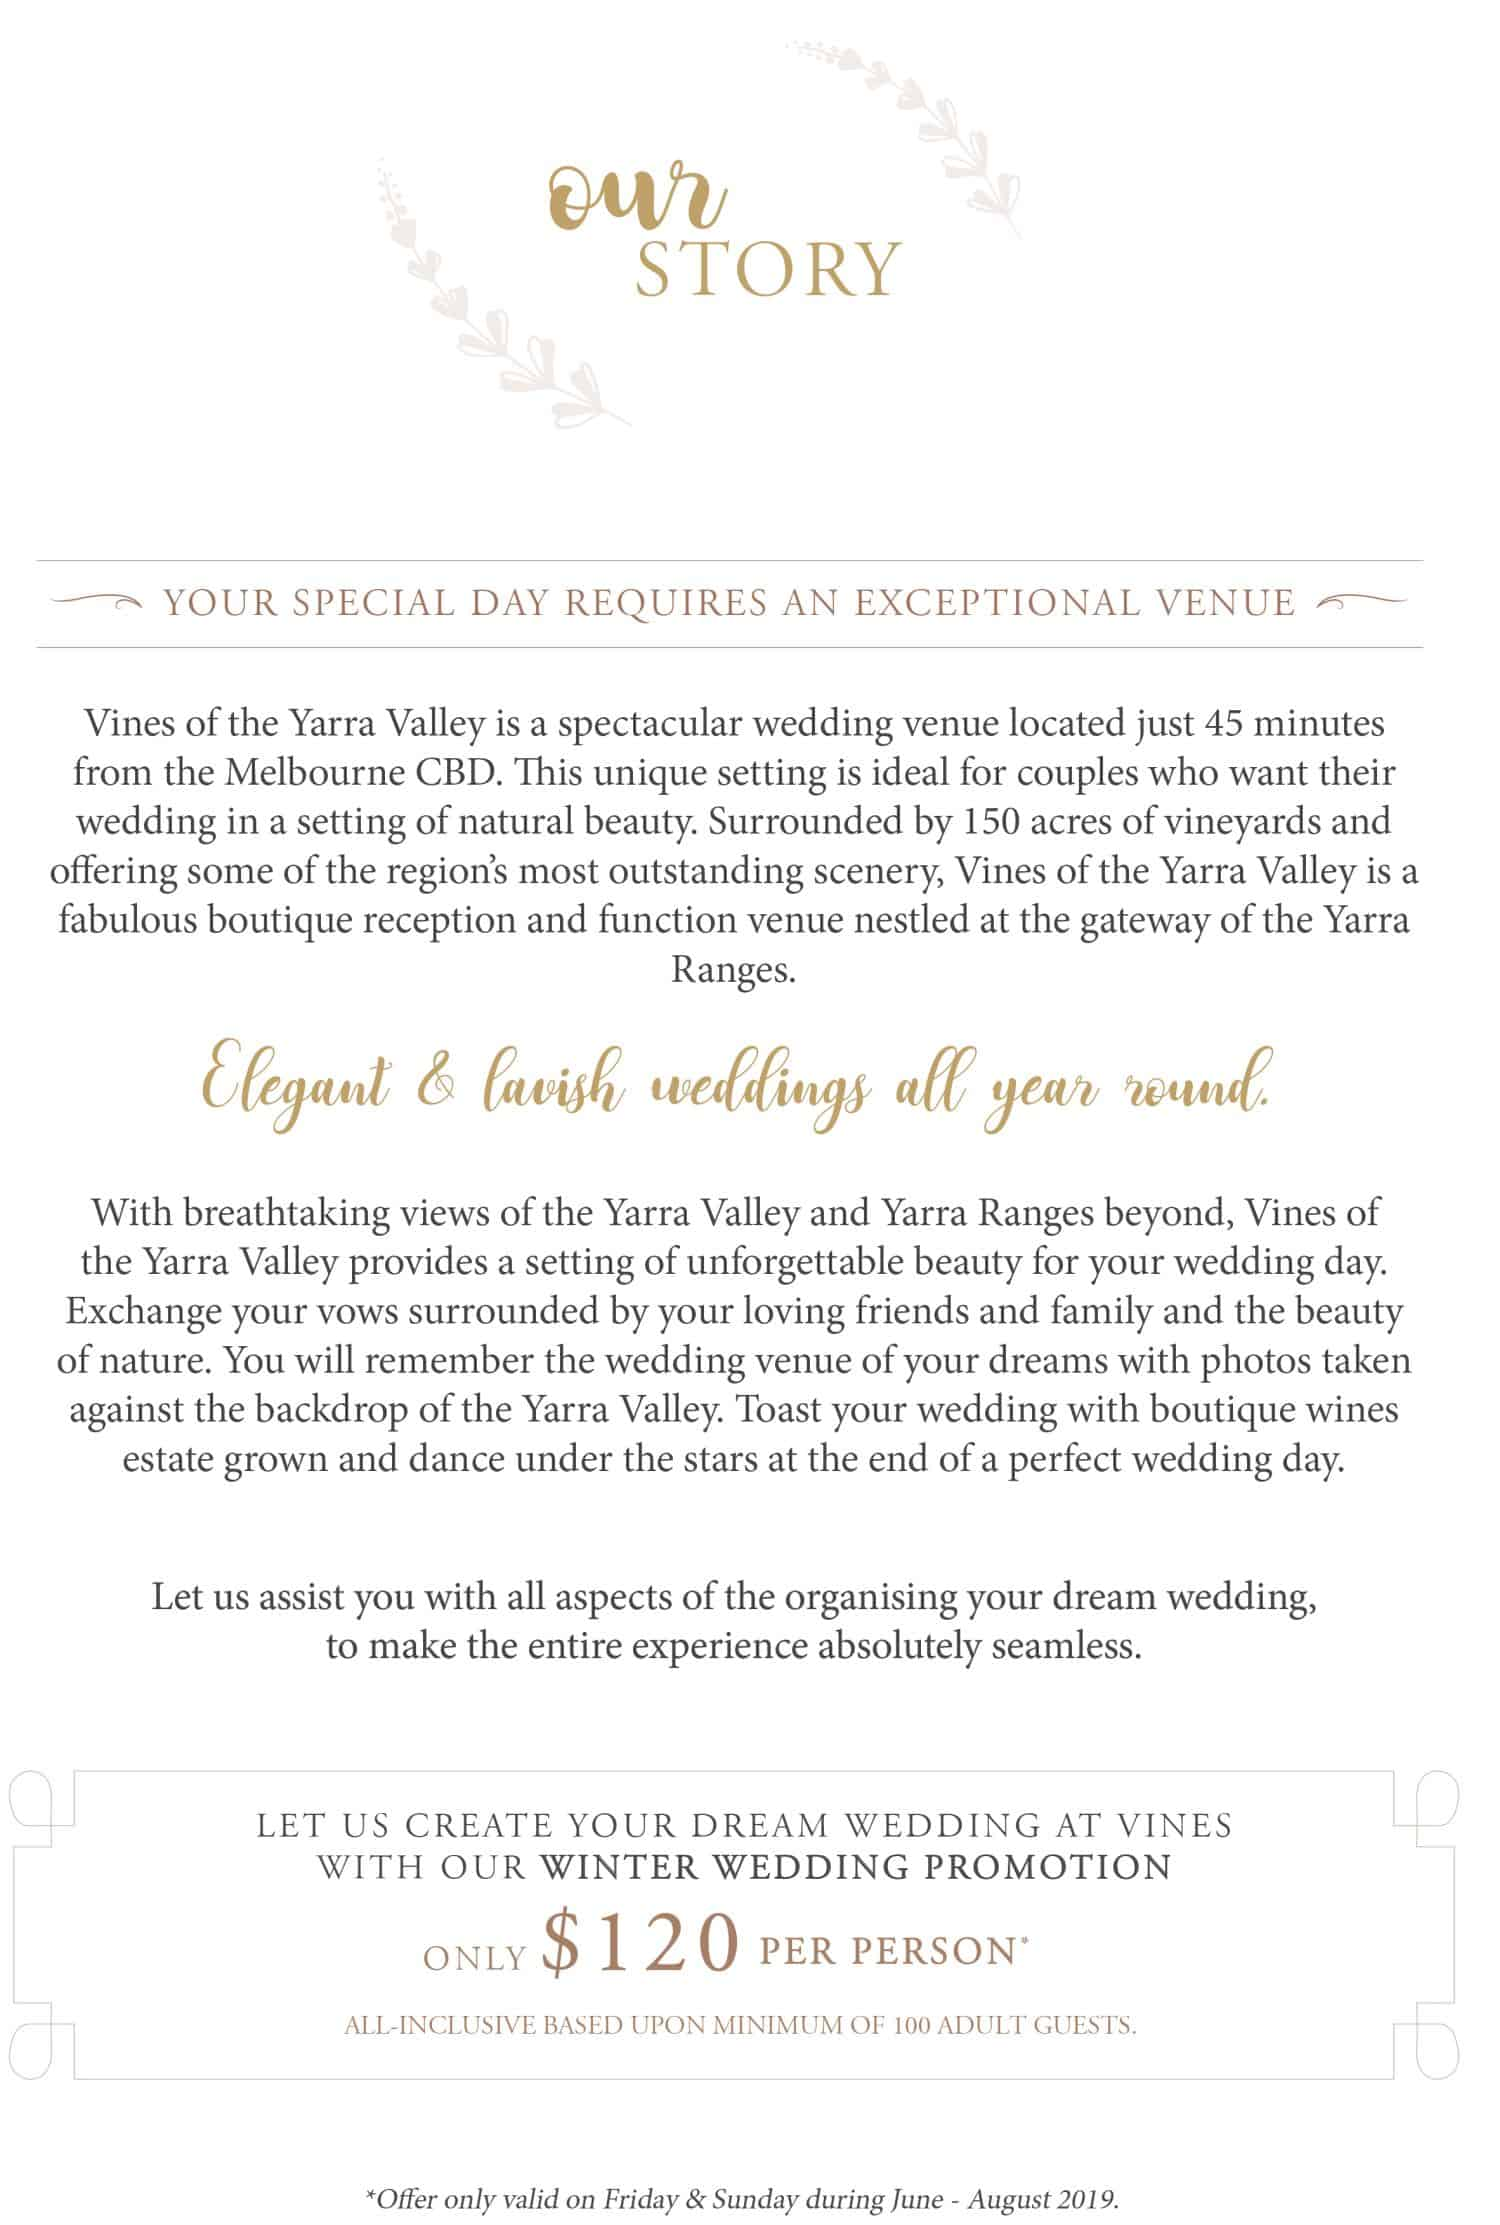 Winter Wedding Promotion_Vine-2